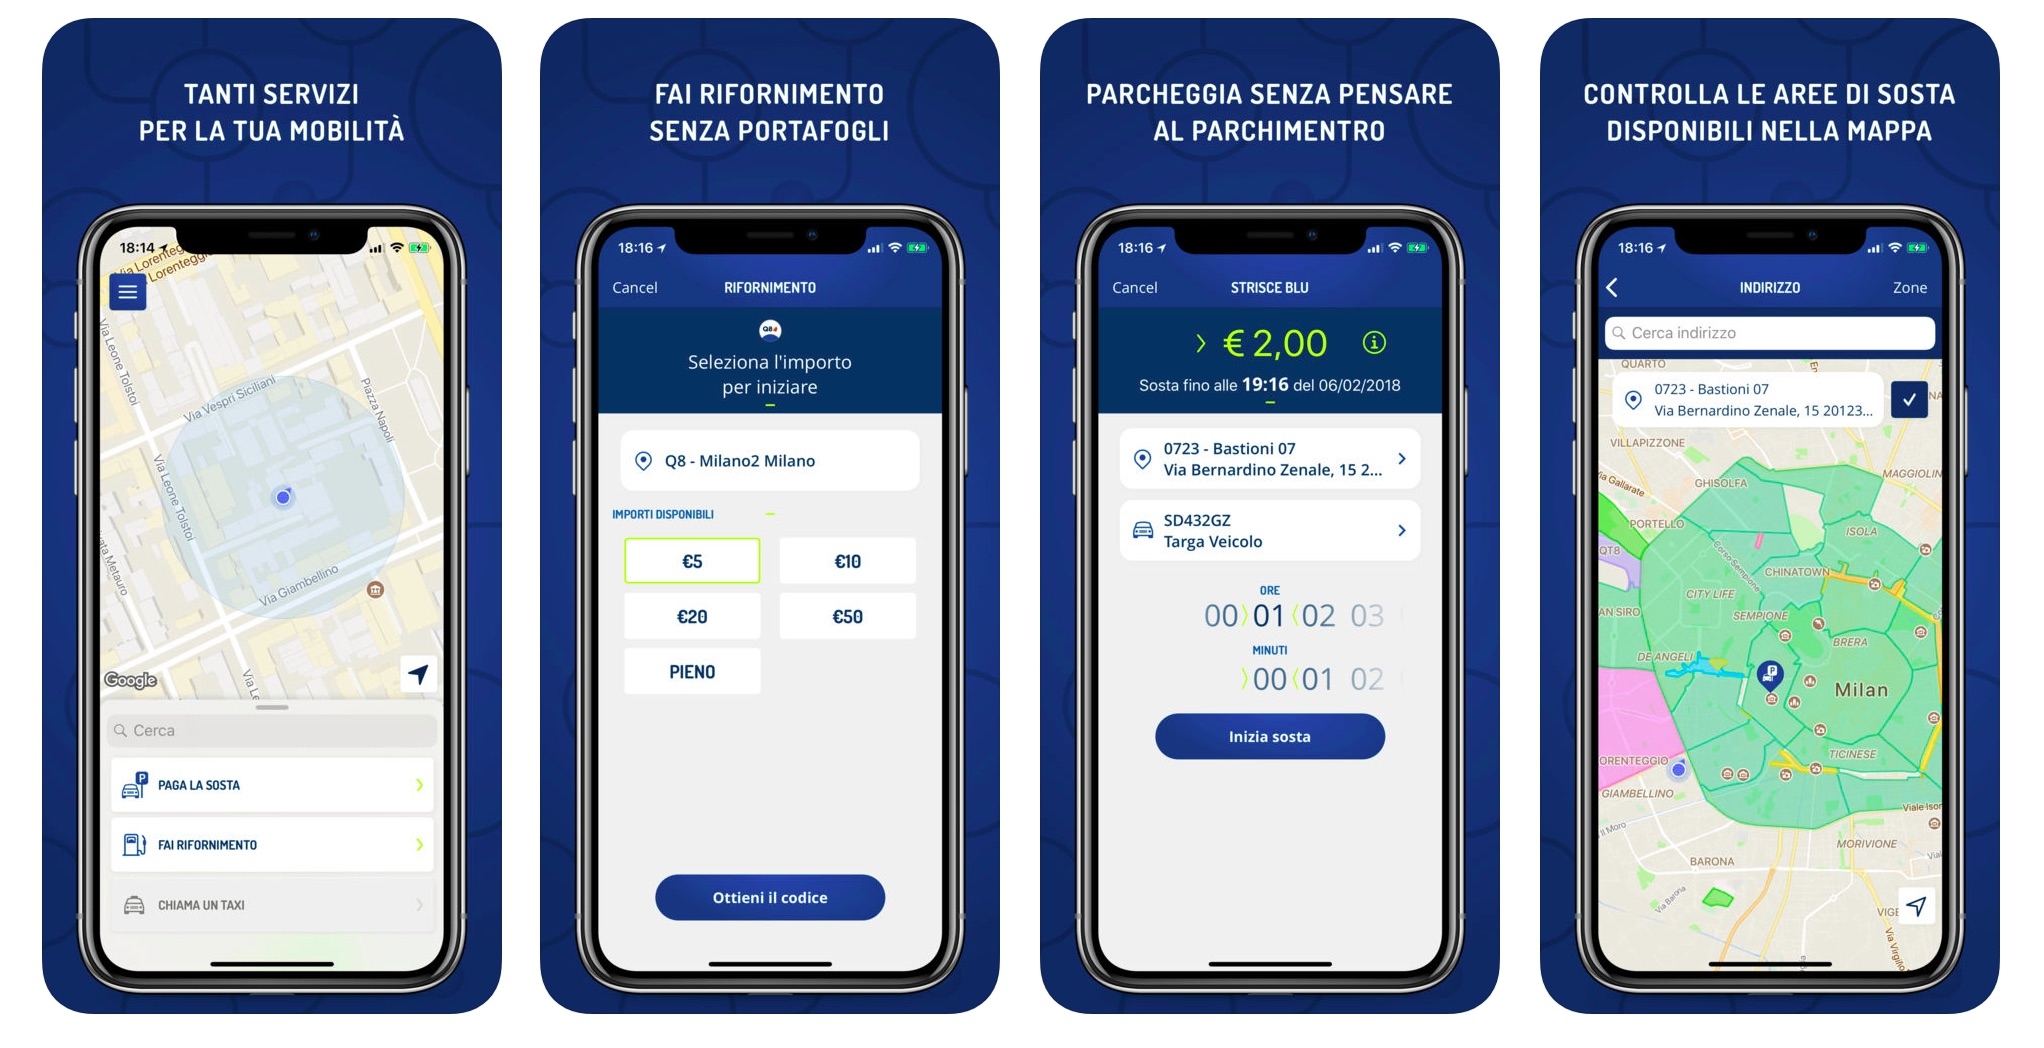 Le news di OF dedicate a payment, e-shopping e app